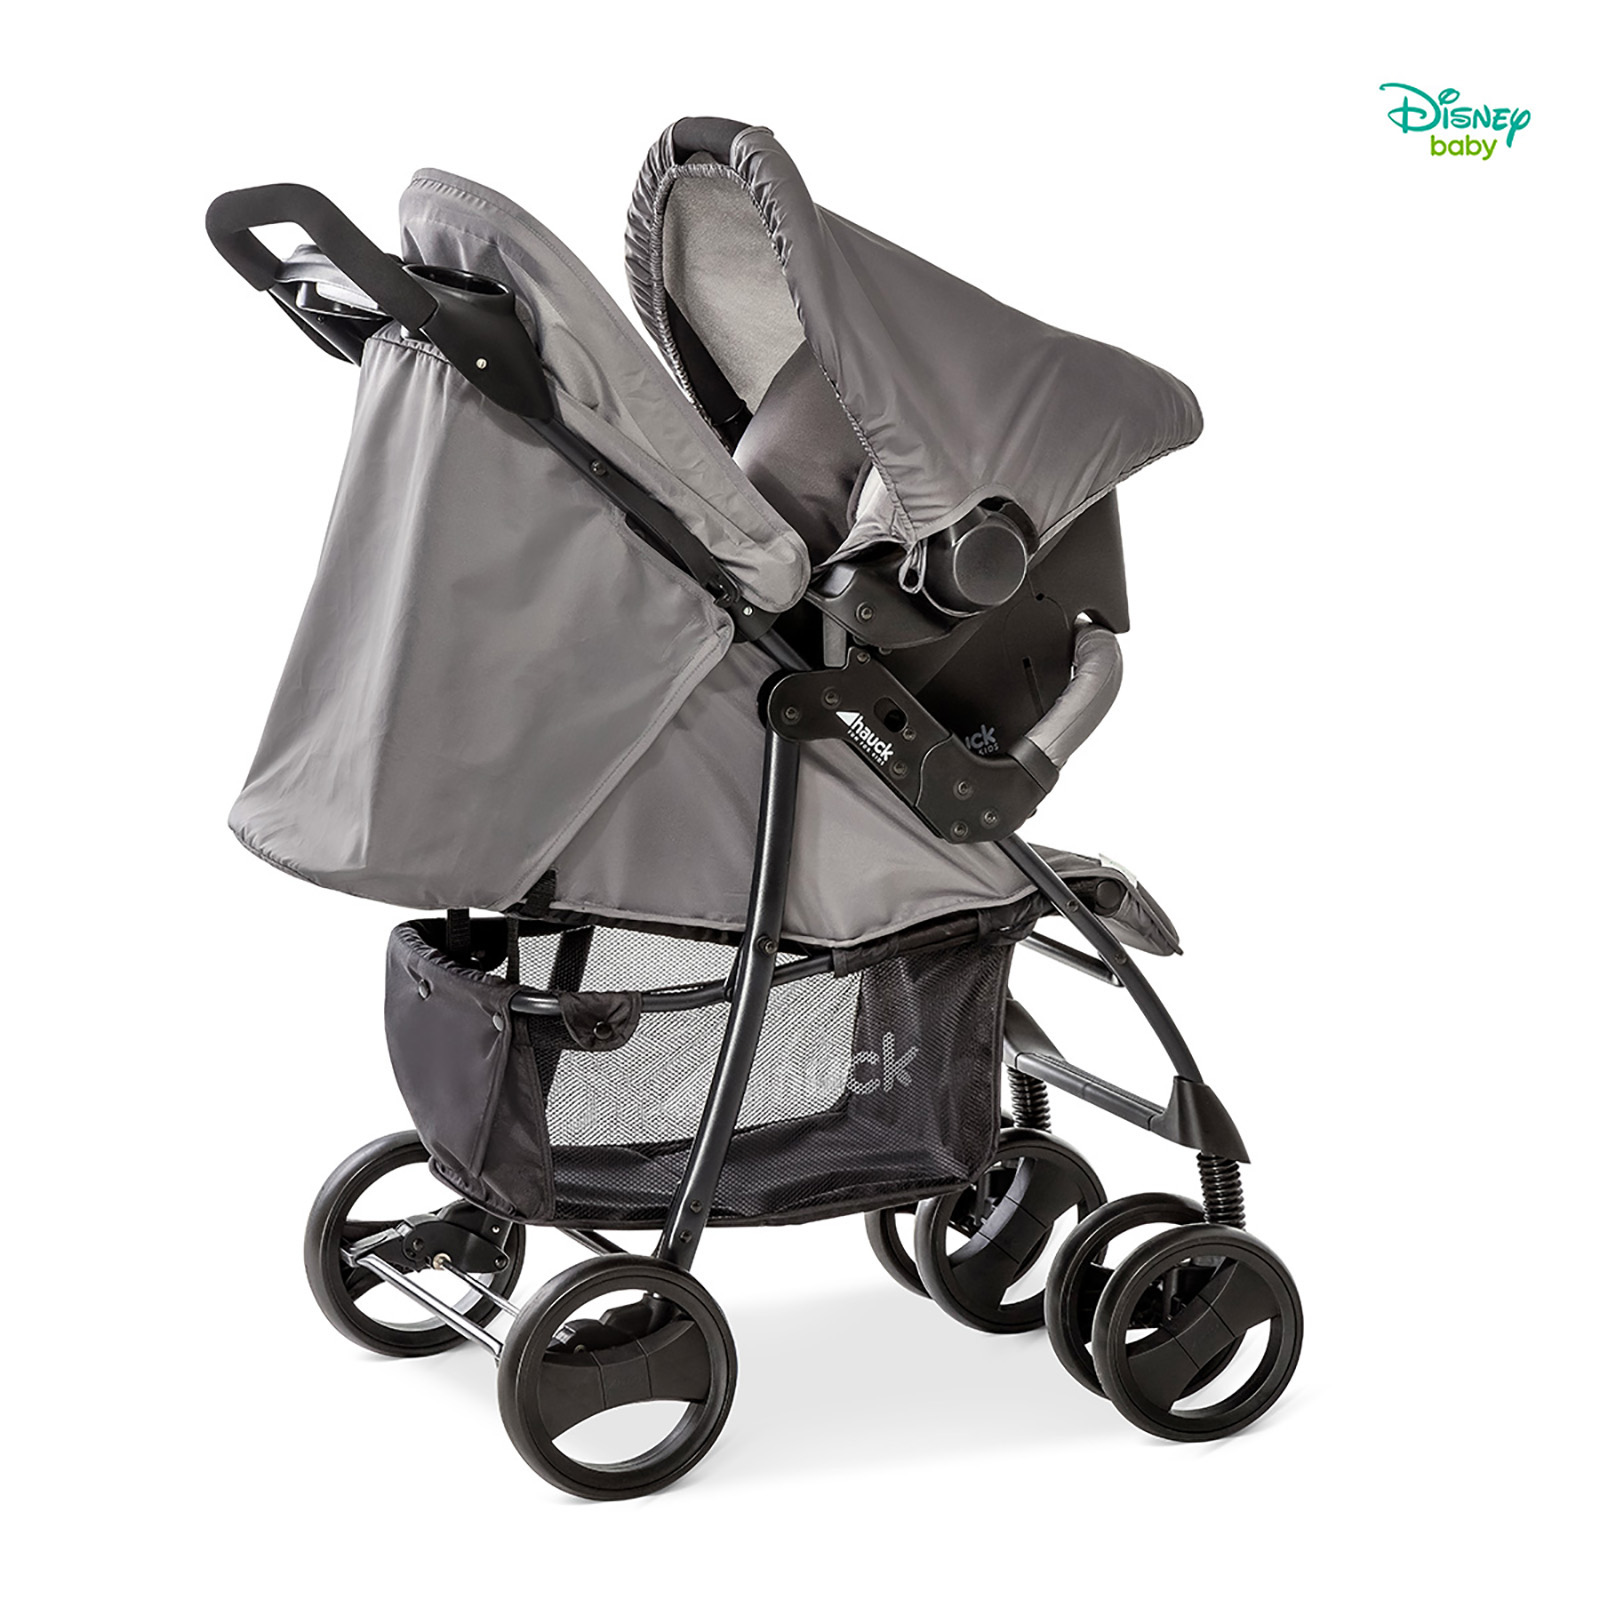 Hauck Shopper Pushchair Review Hauck Disney Shopper Slx Shop N Drive Everything You Need